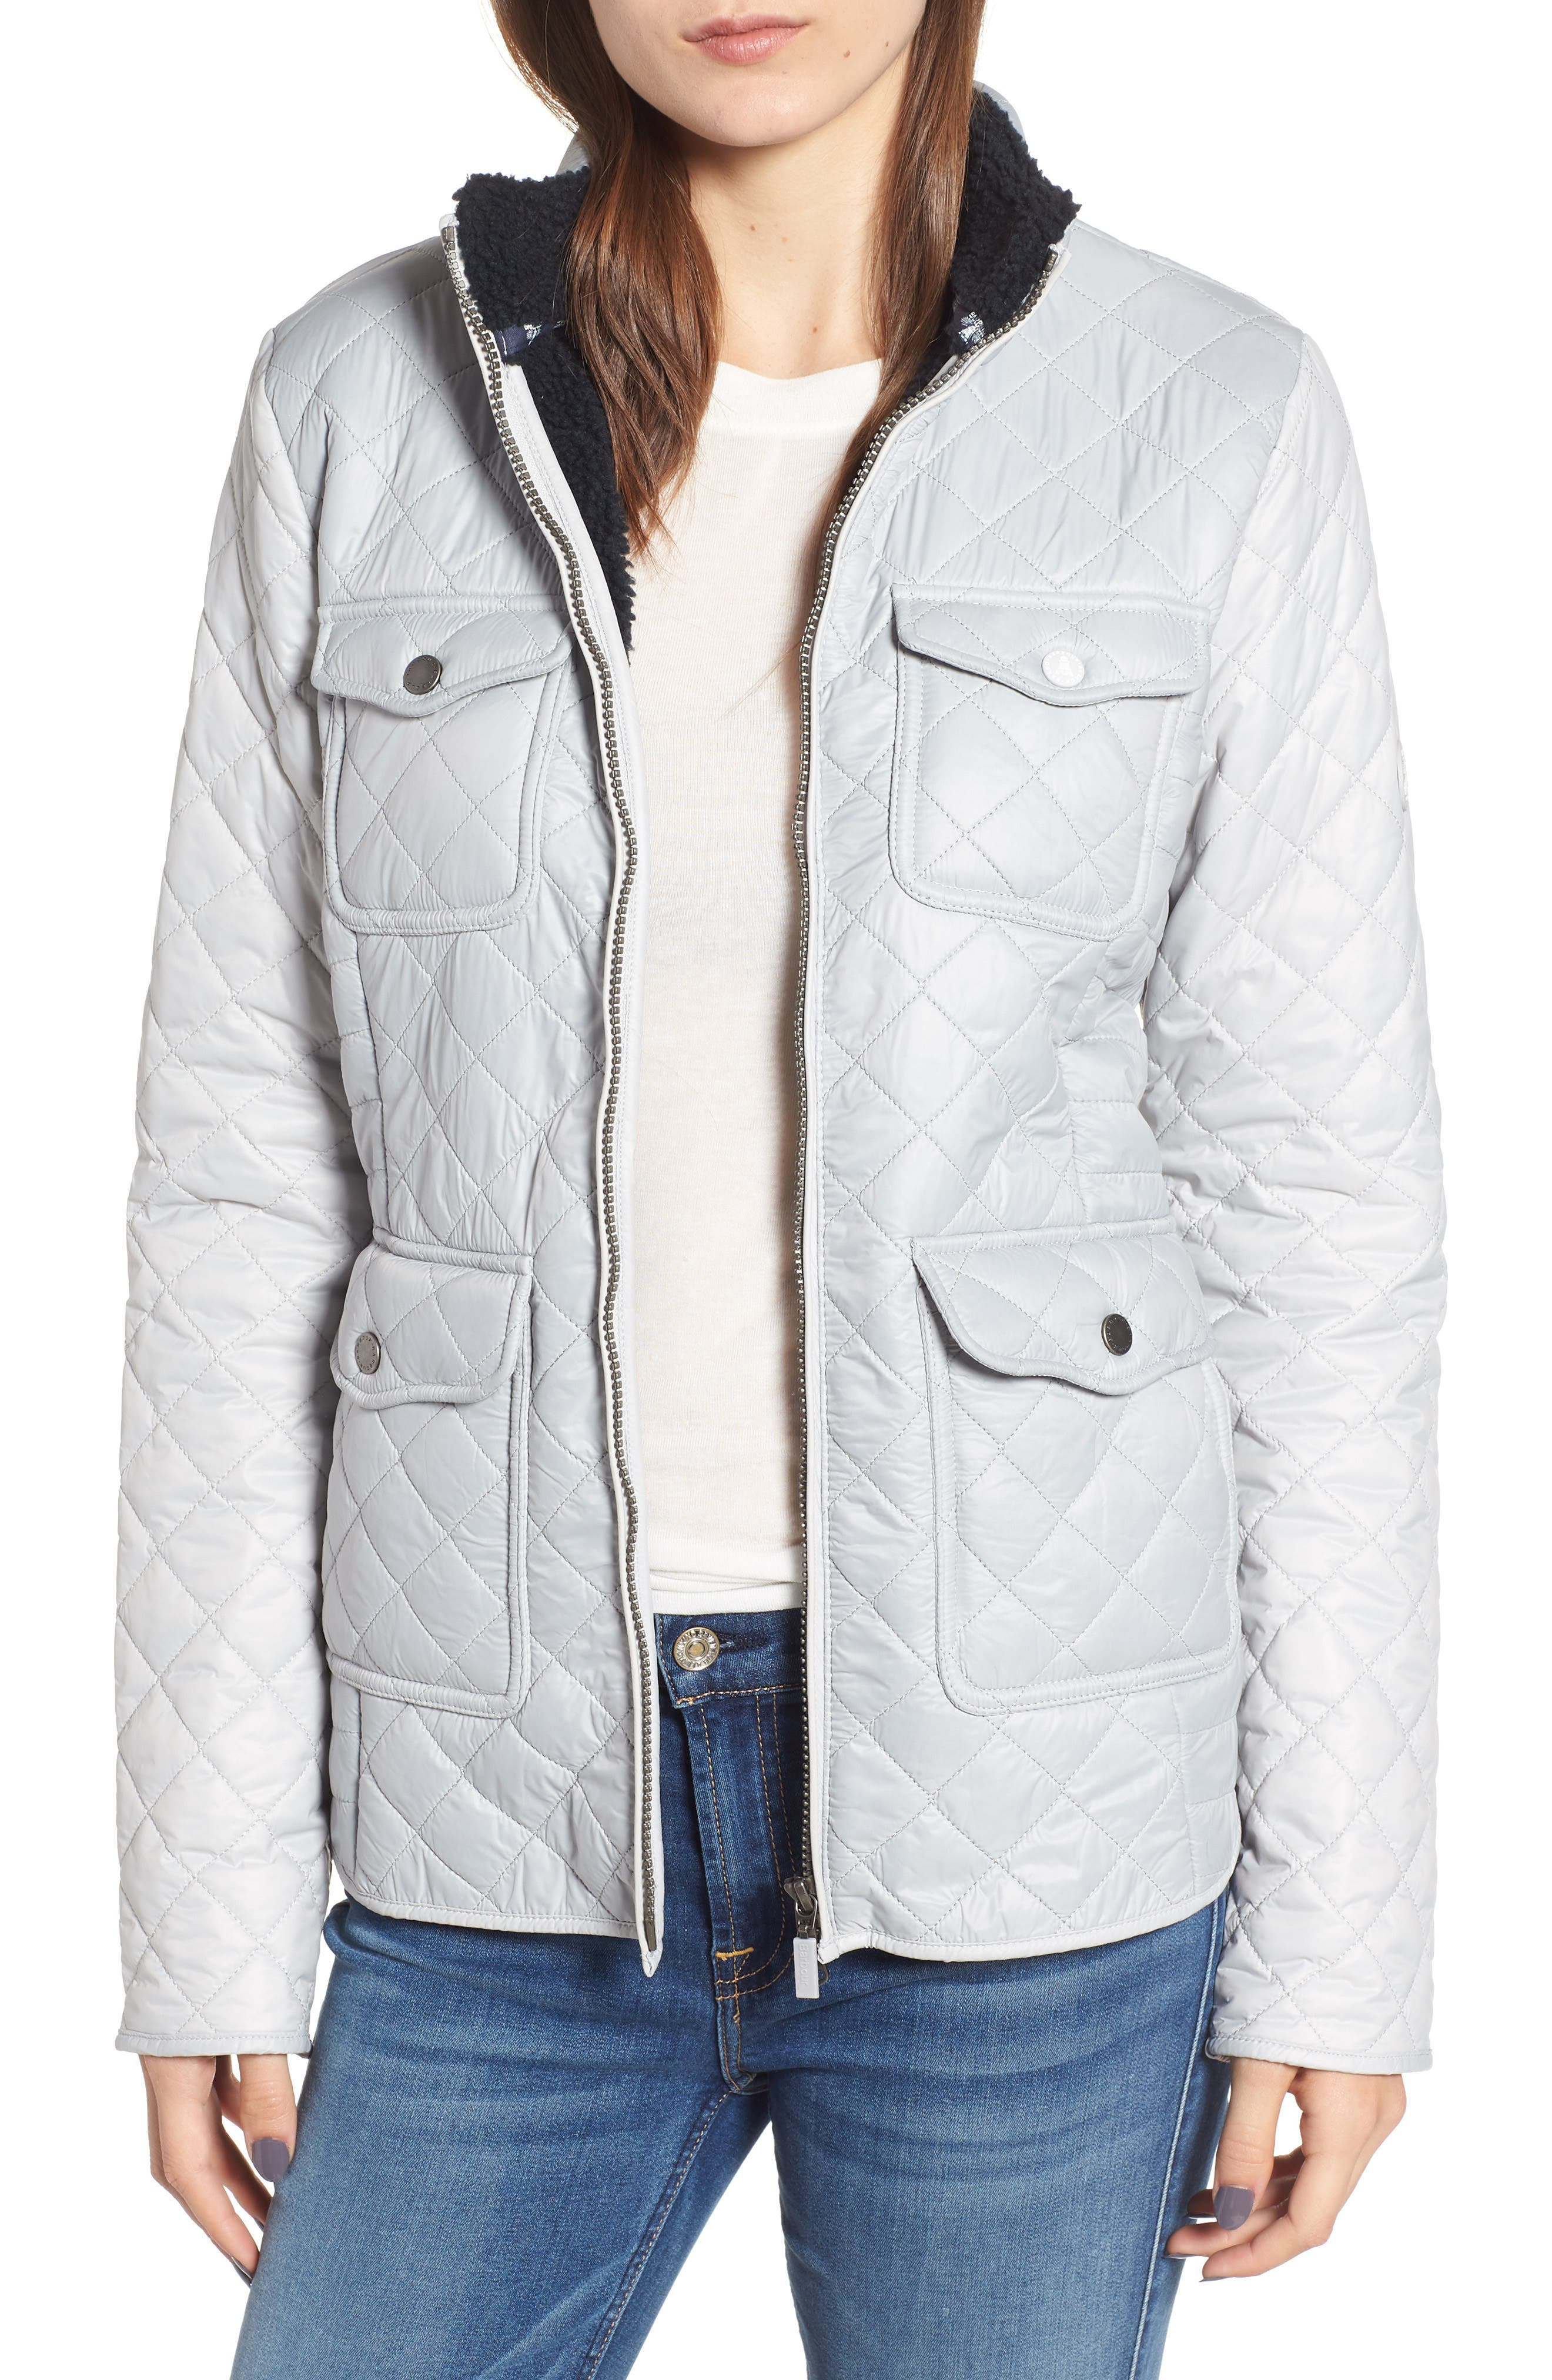 Barbour Weymouth Quilted Jacket, US / 8 UK - White